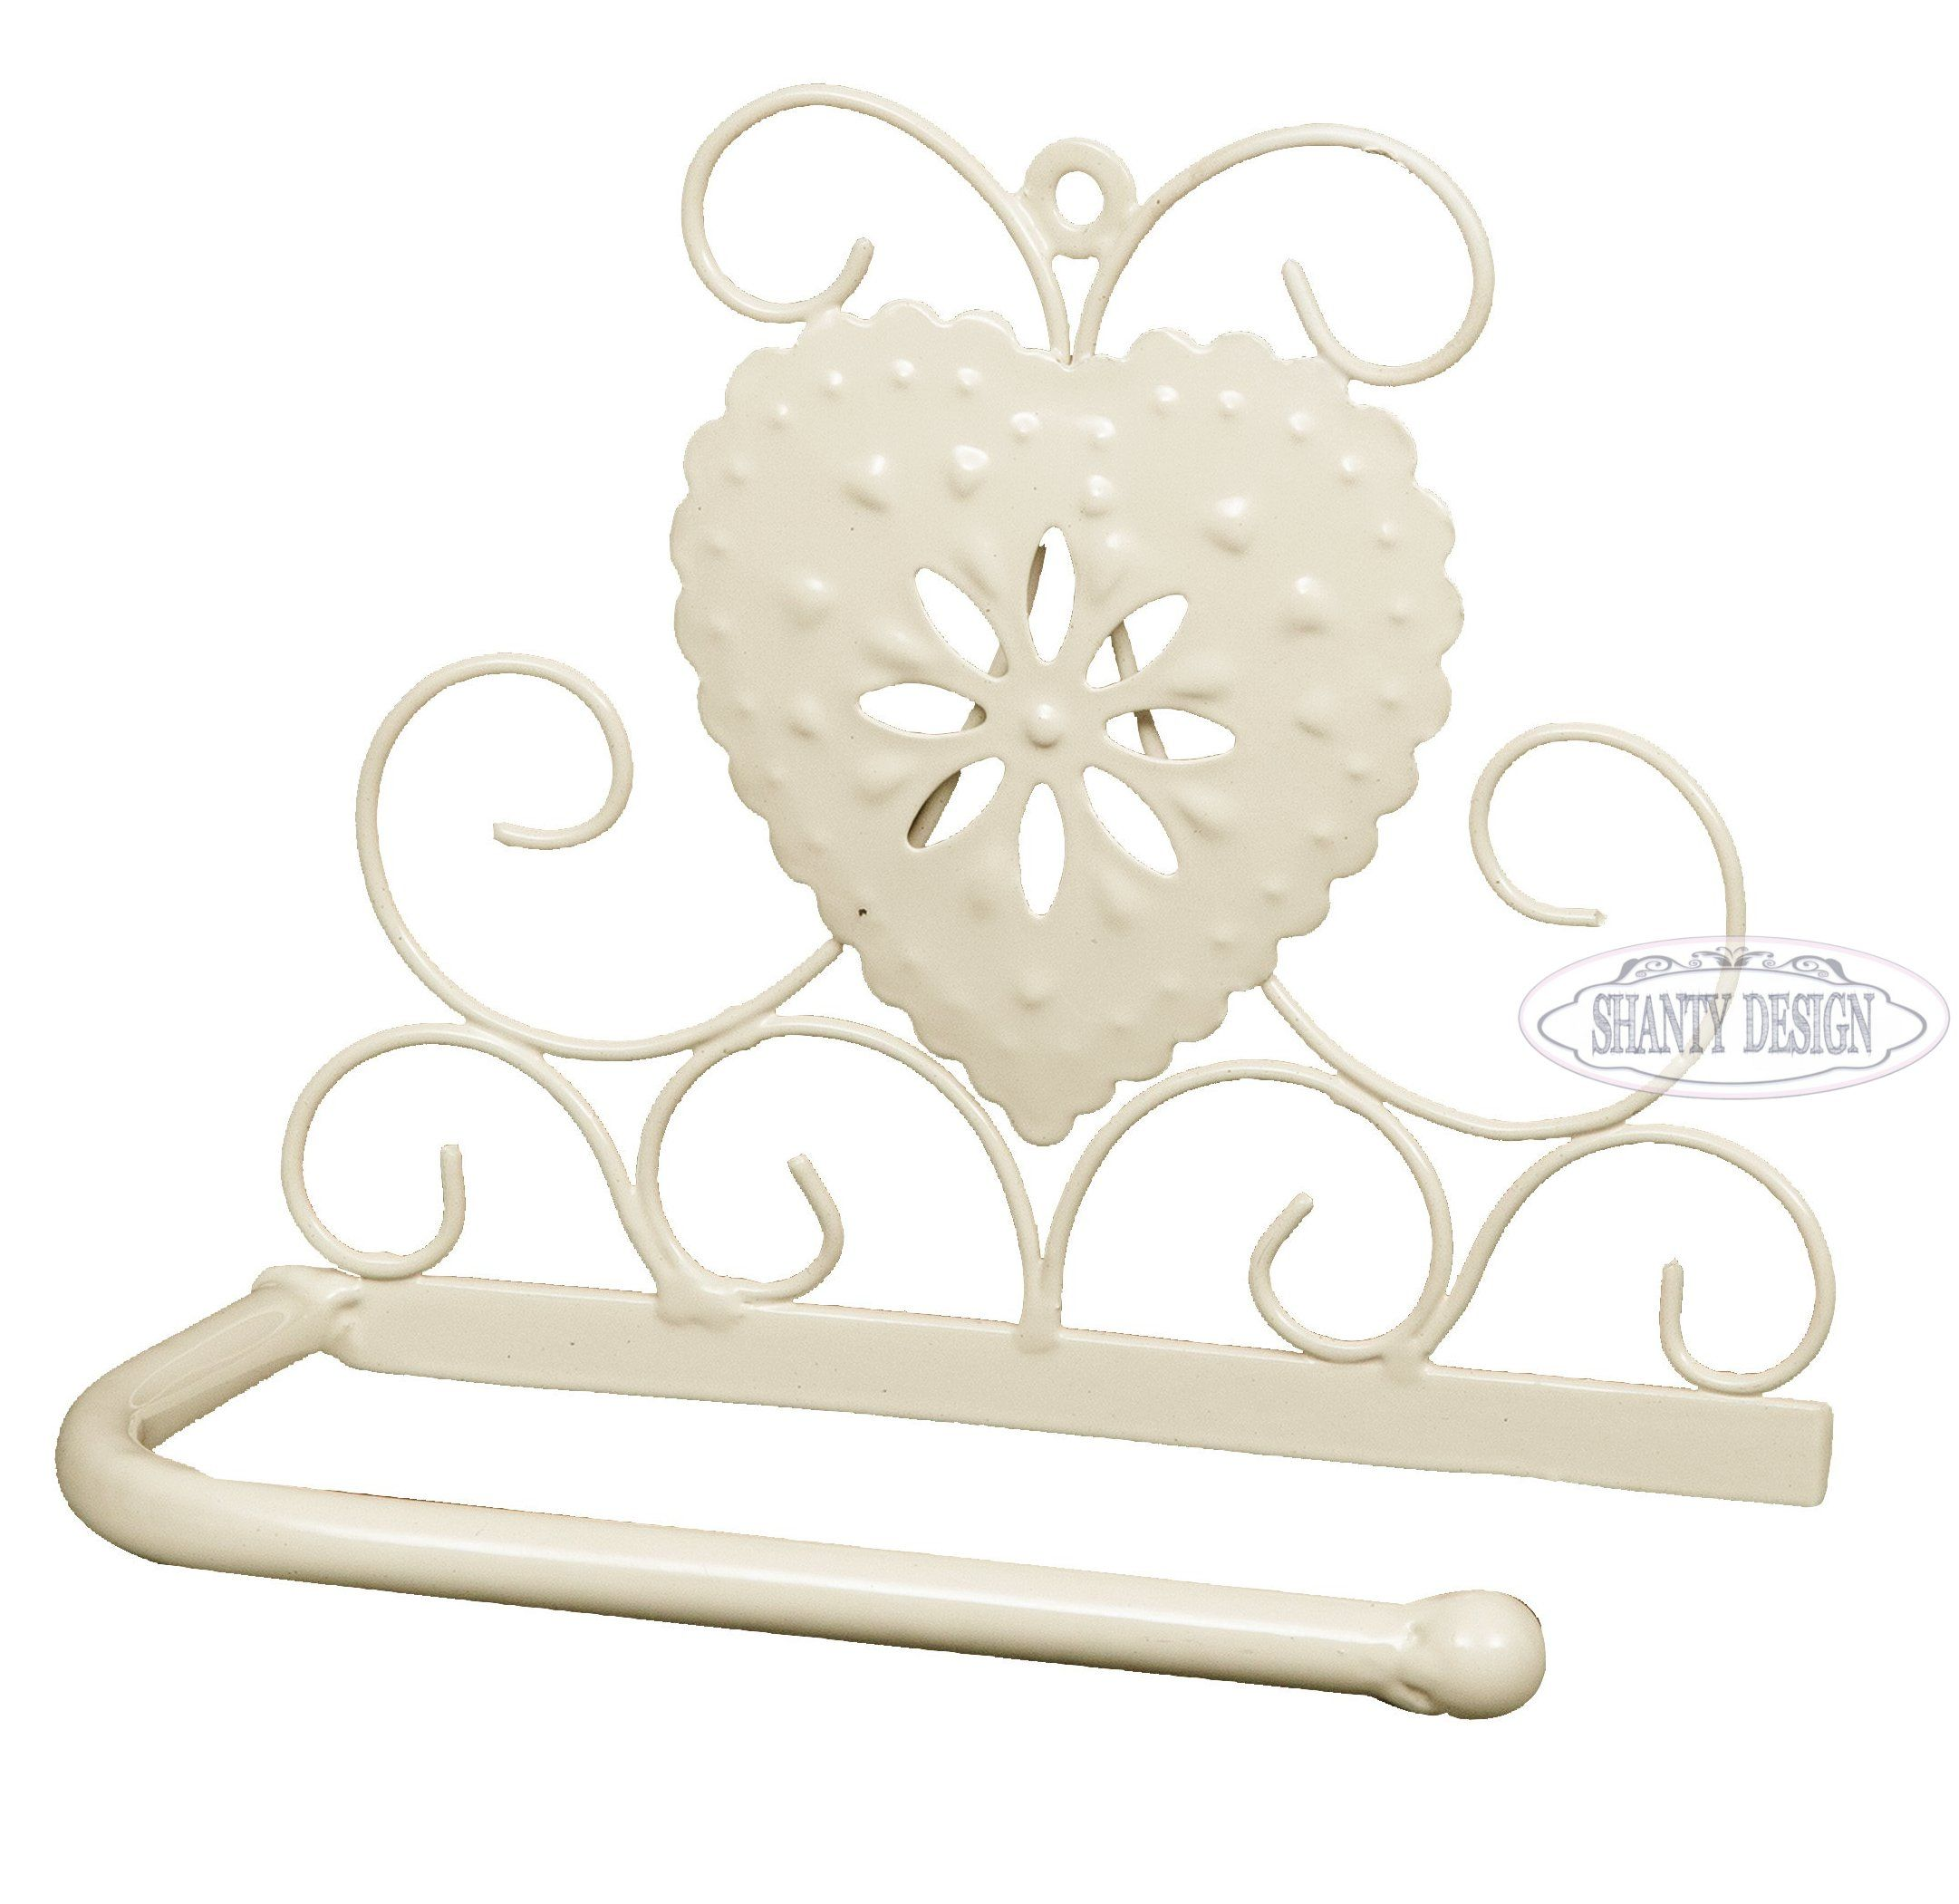 Set Accessori Bagno Ferro Battuto.Accessori Bagno Provenzali 28 Images Accessori Shabby Chic E